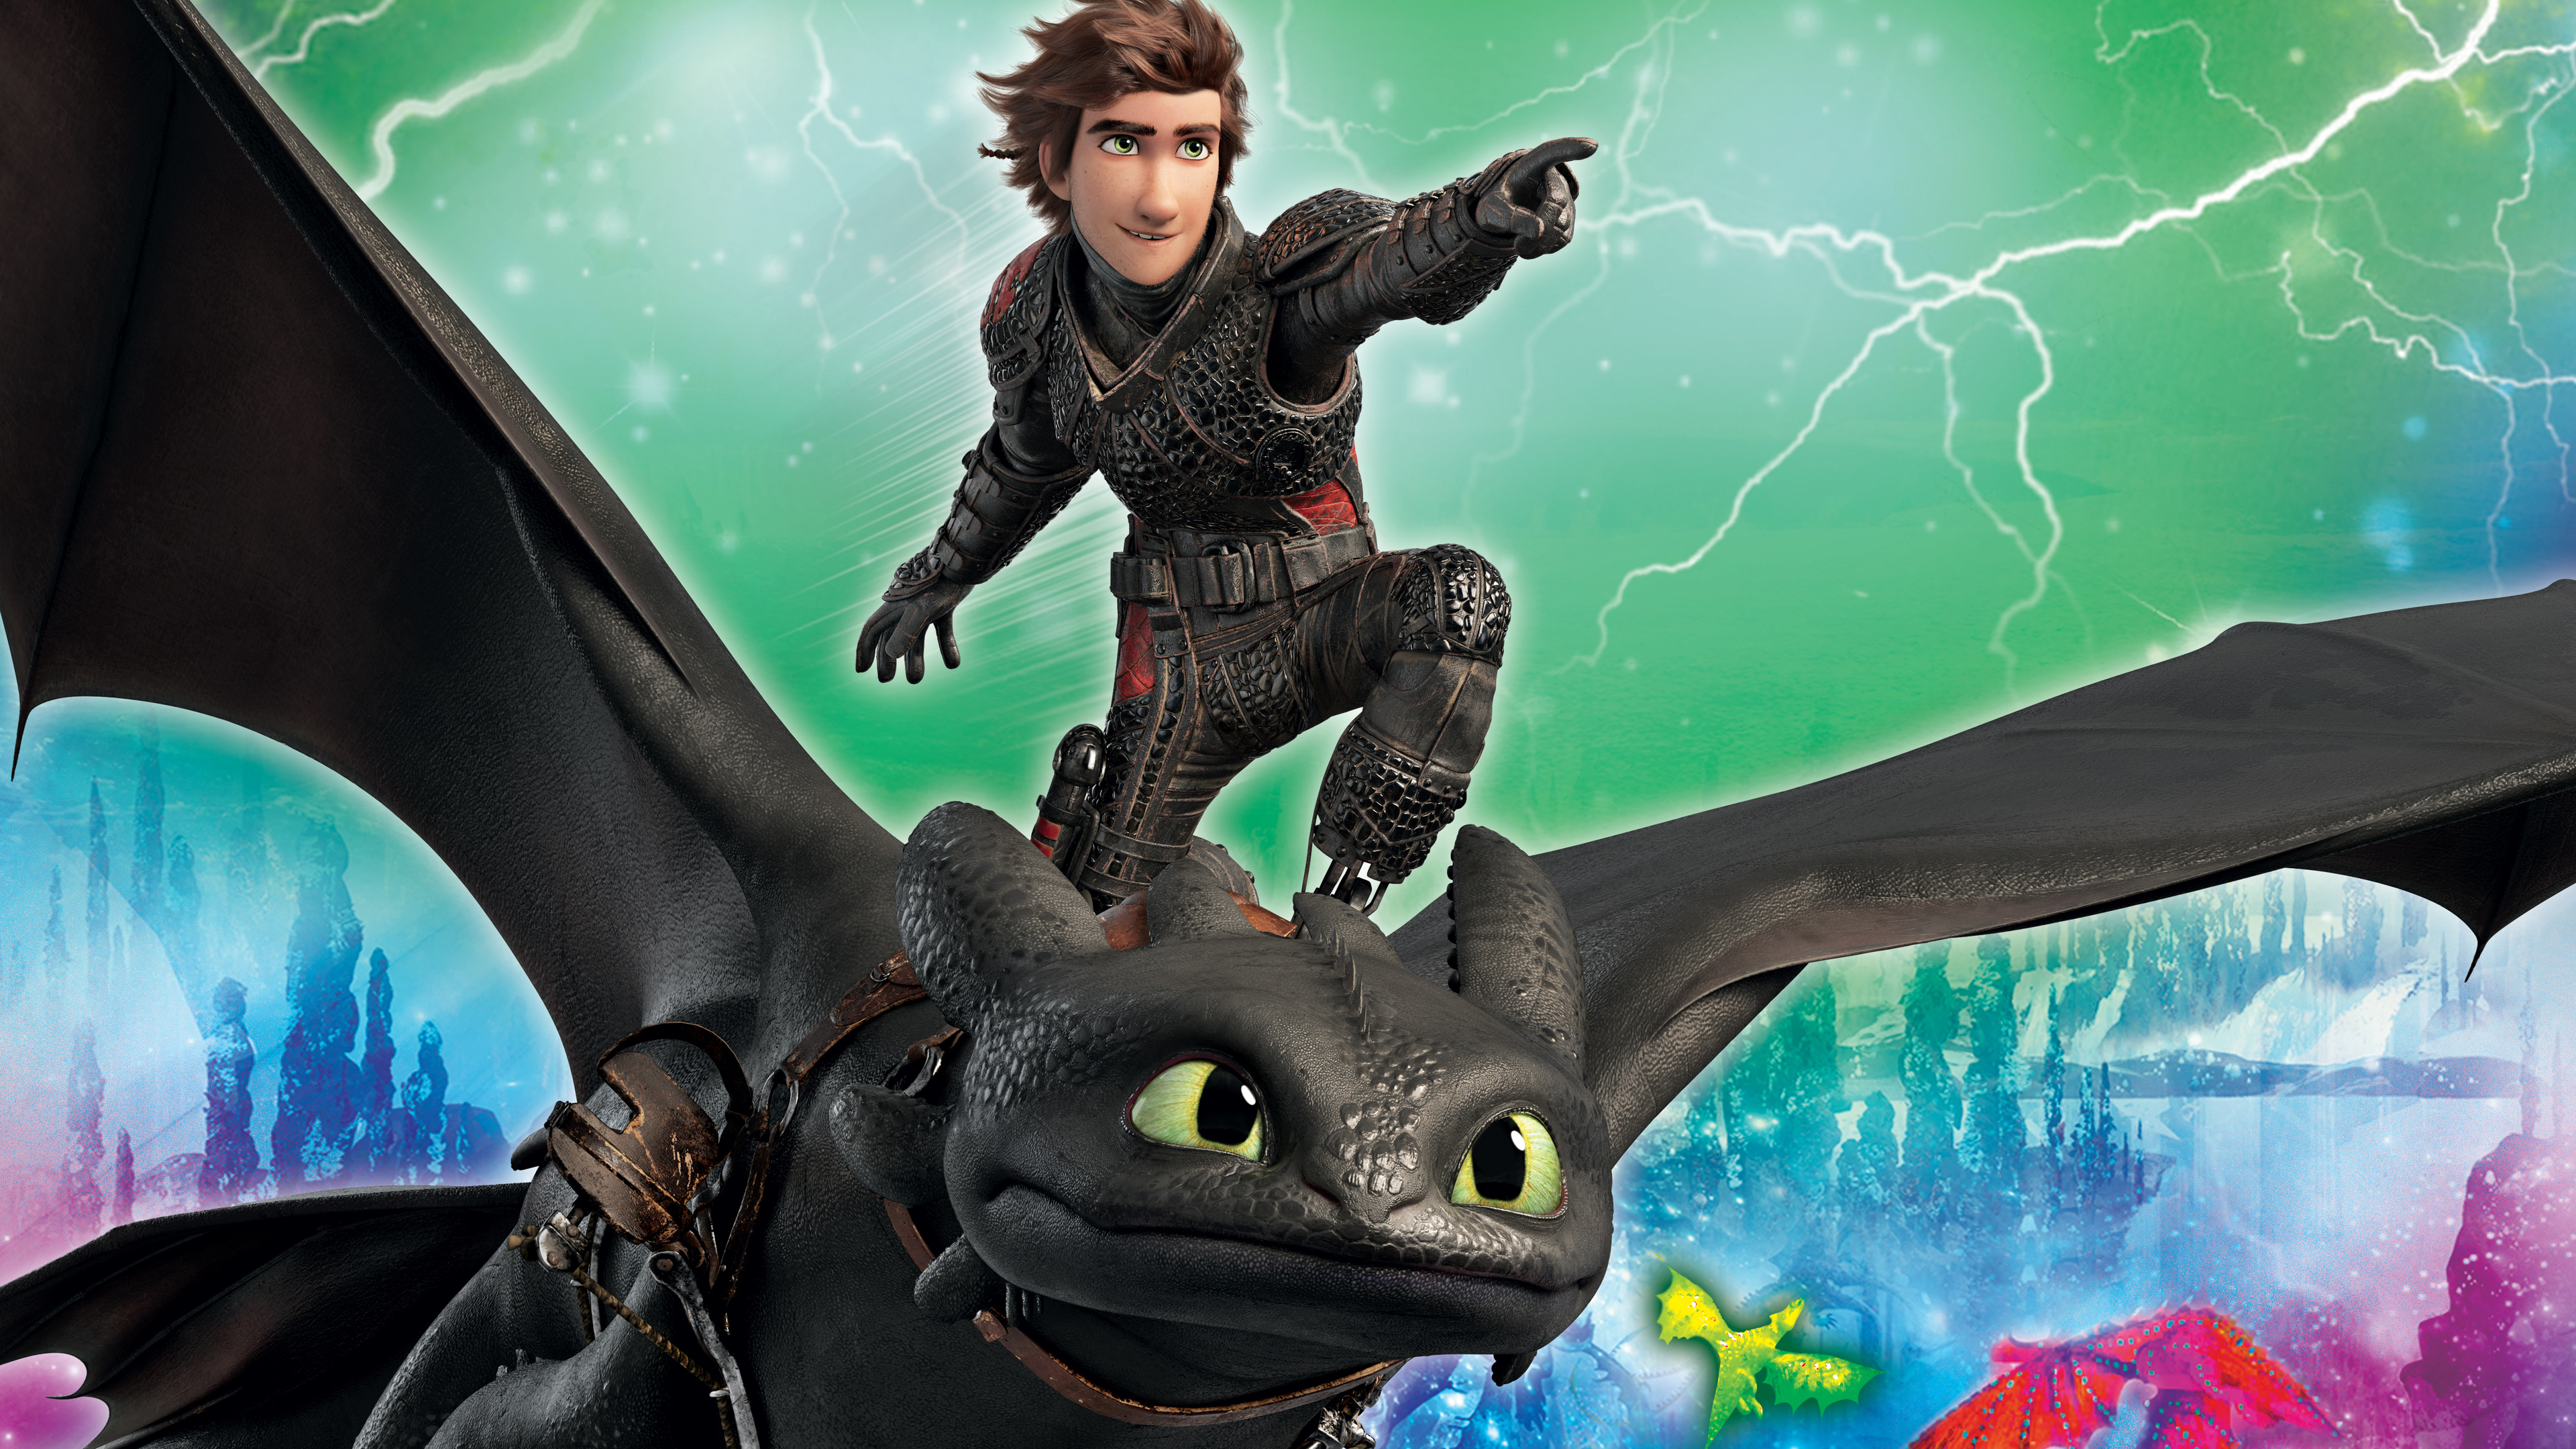 Wallpaper 4k How To Train Your Dragon 4k 2019 Movies